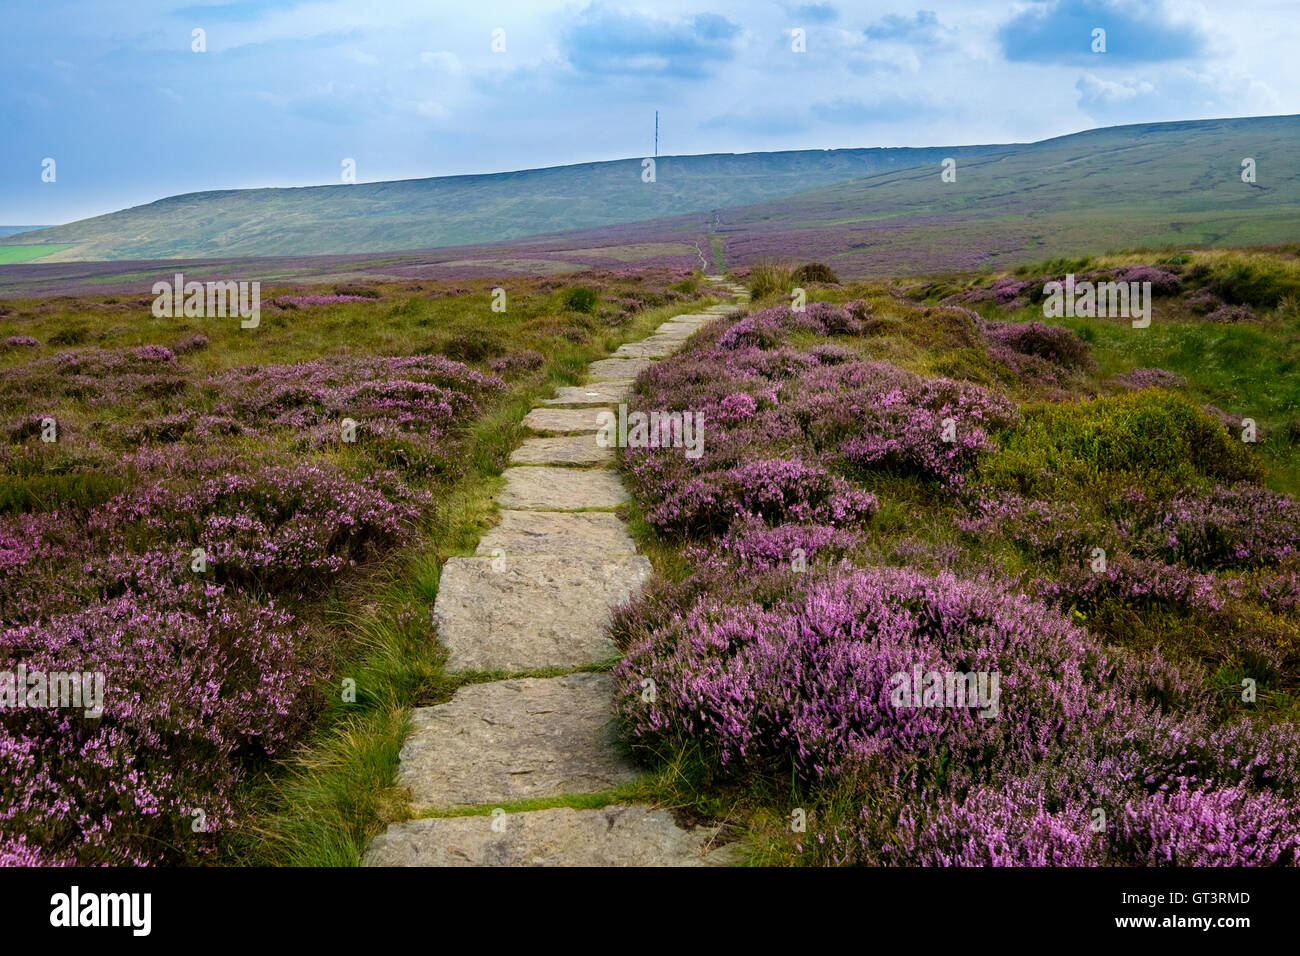 Heather lined paved section of the Pennine Way on Saddleworth Moor Yorkshire - Stock Image